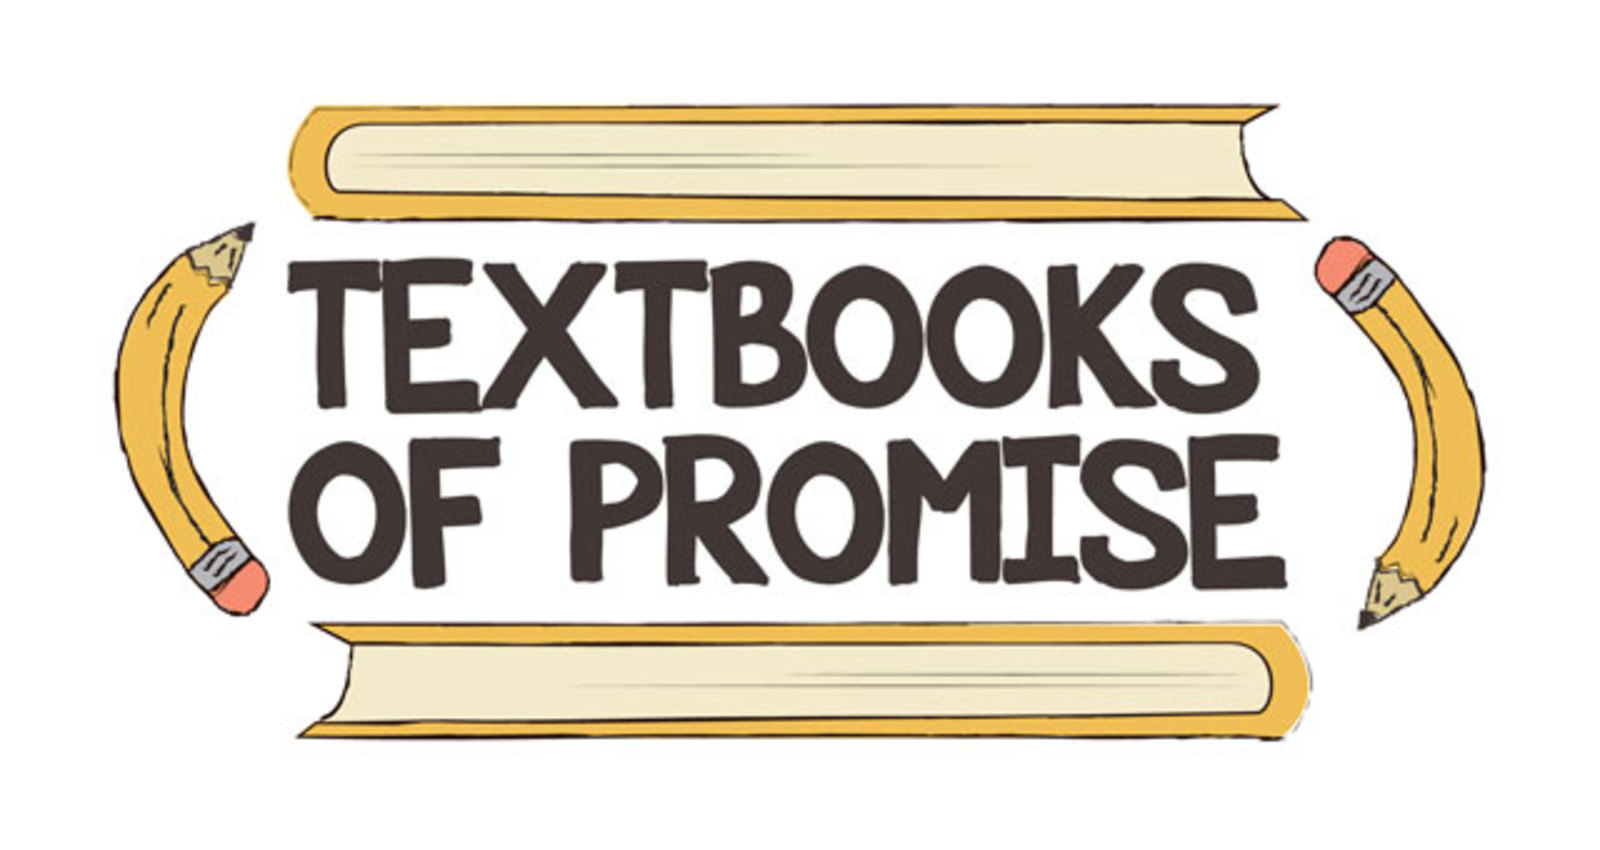 Textbooks of Promise